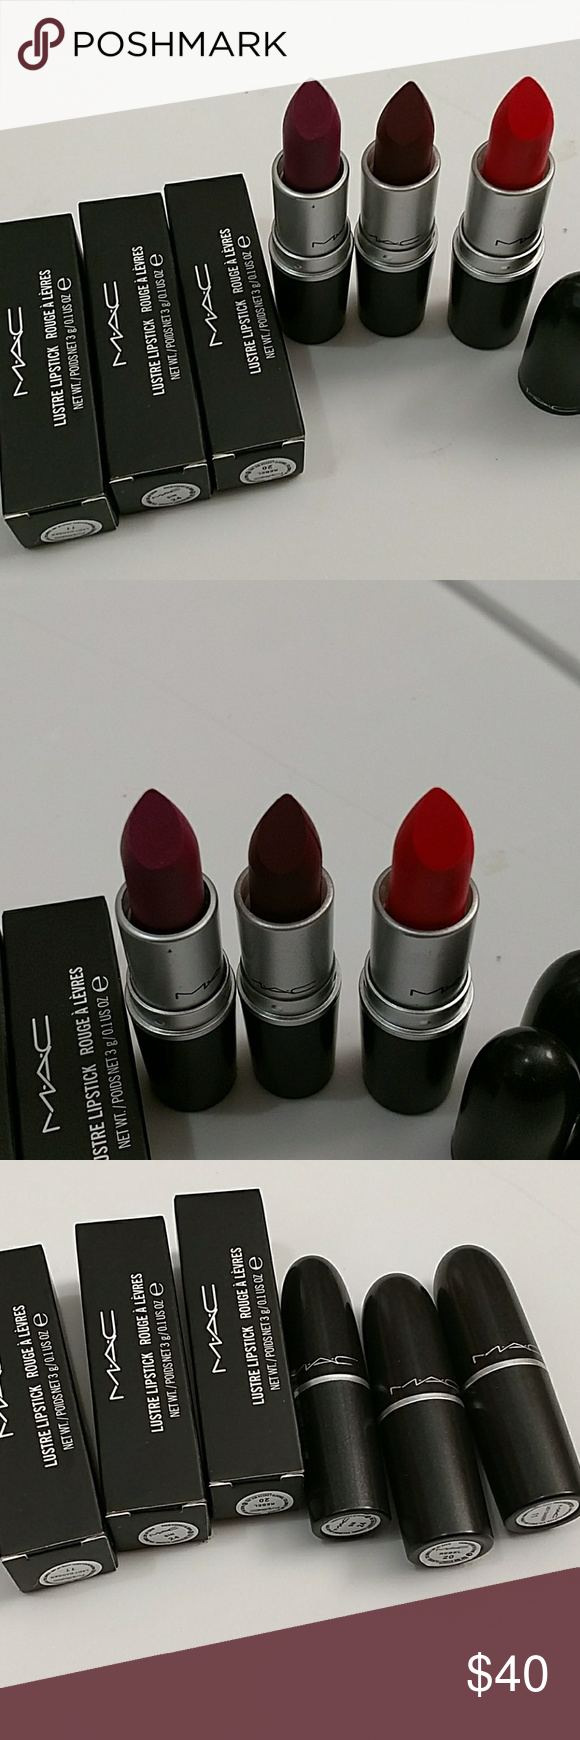 Mac Lustre lipstick lot of 3 pc You will receive 3 pc . Color: Sin 24, Lady danger 11 and Rebel 20 MAC Cosmetics Makeup Lipstick